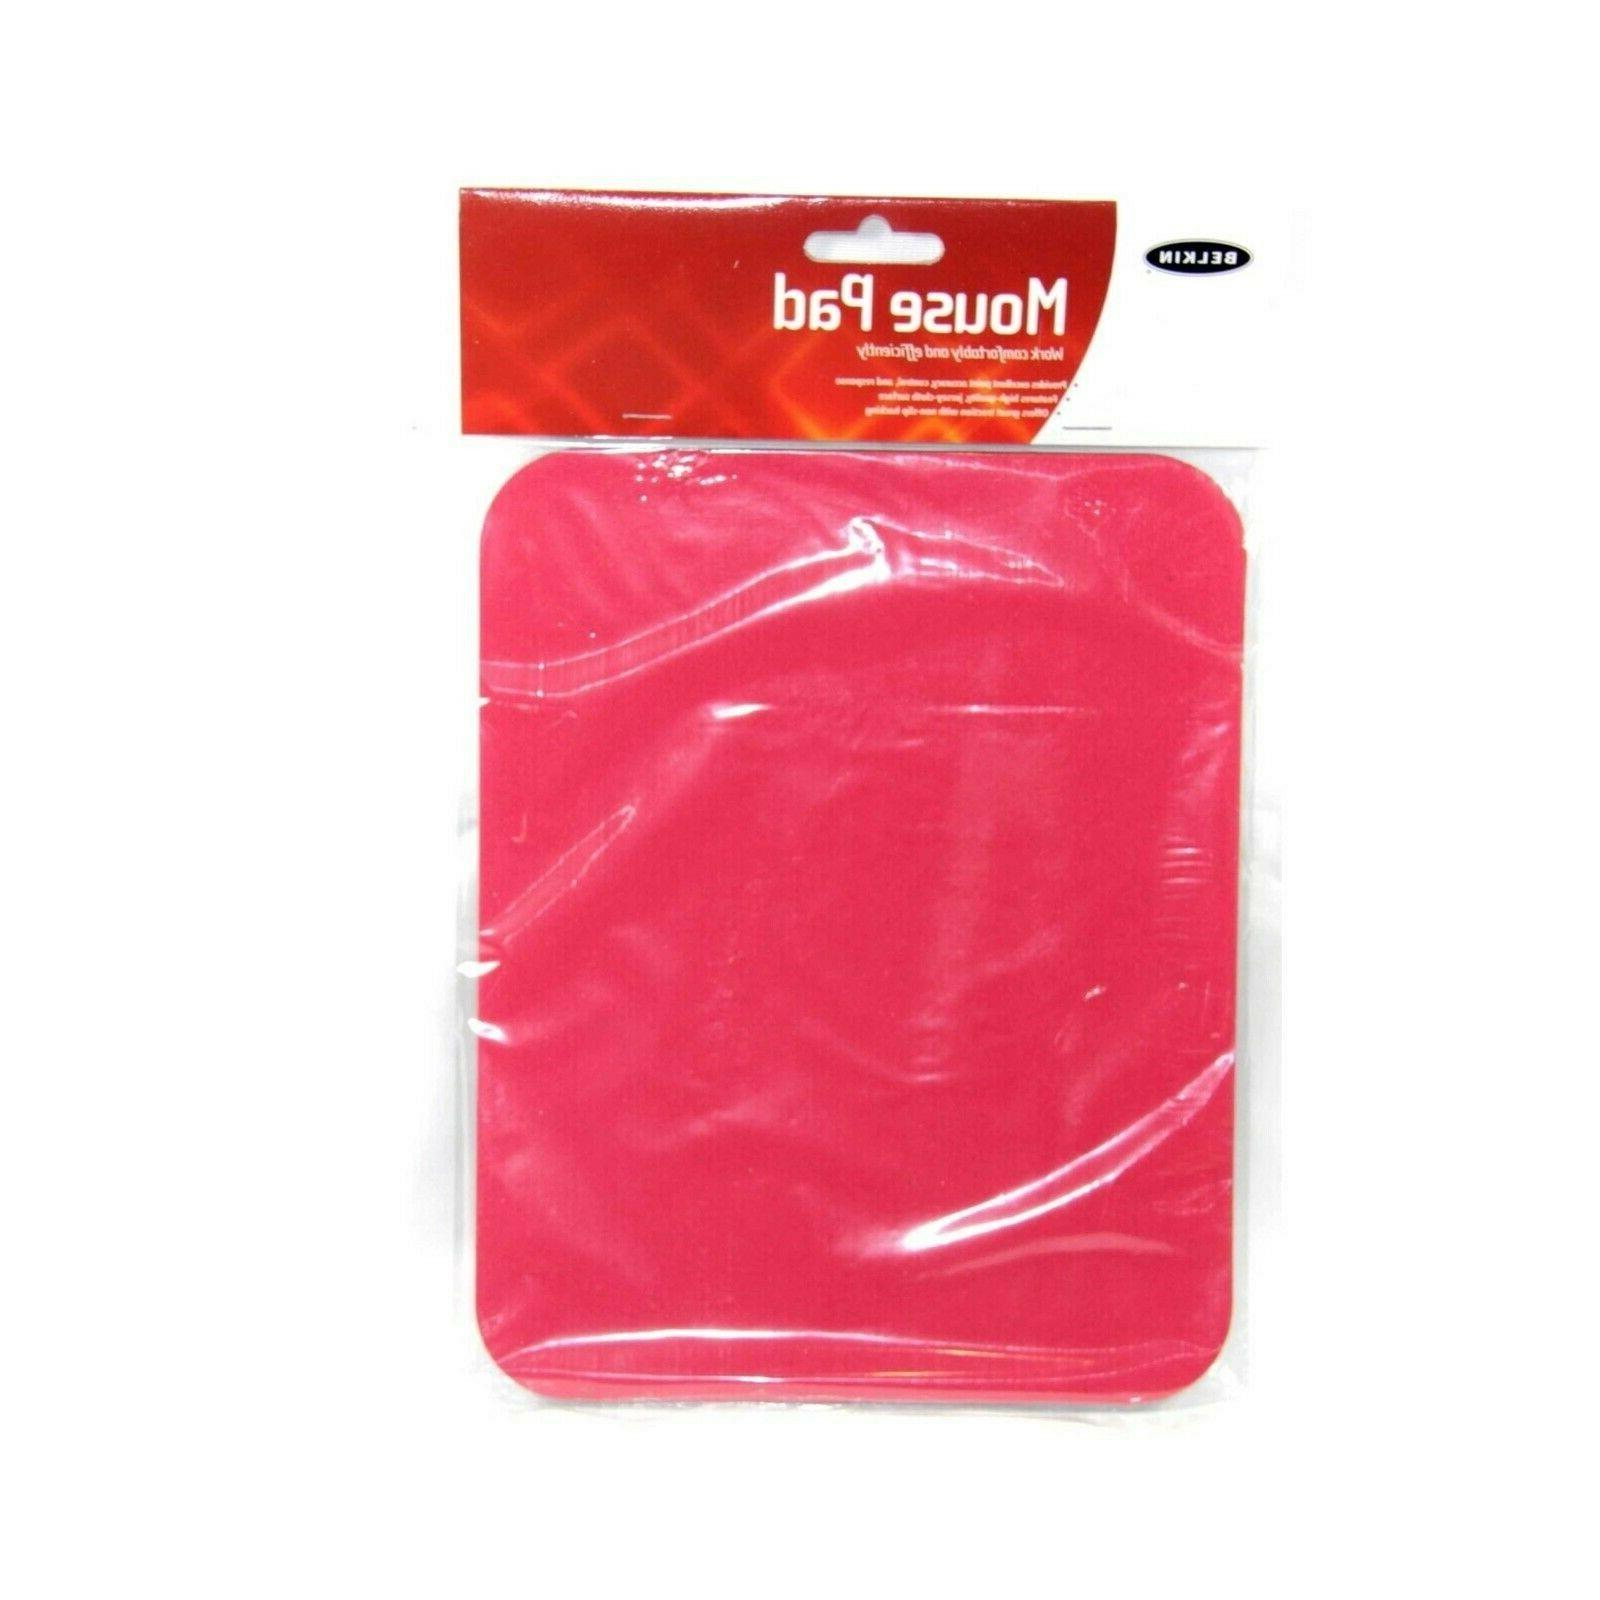 BELKIN F8E081-RED RED STANDARD MOUSE PAD